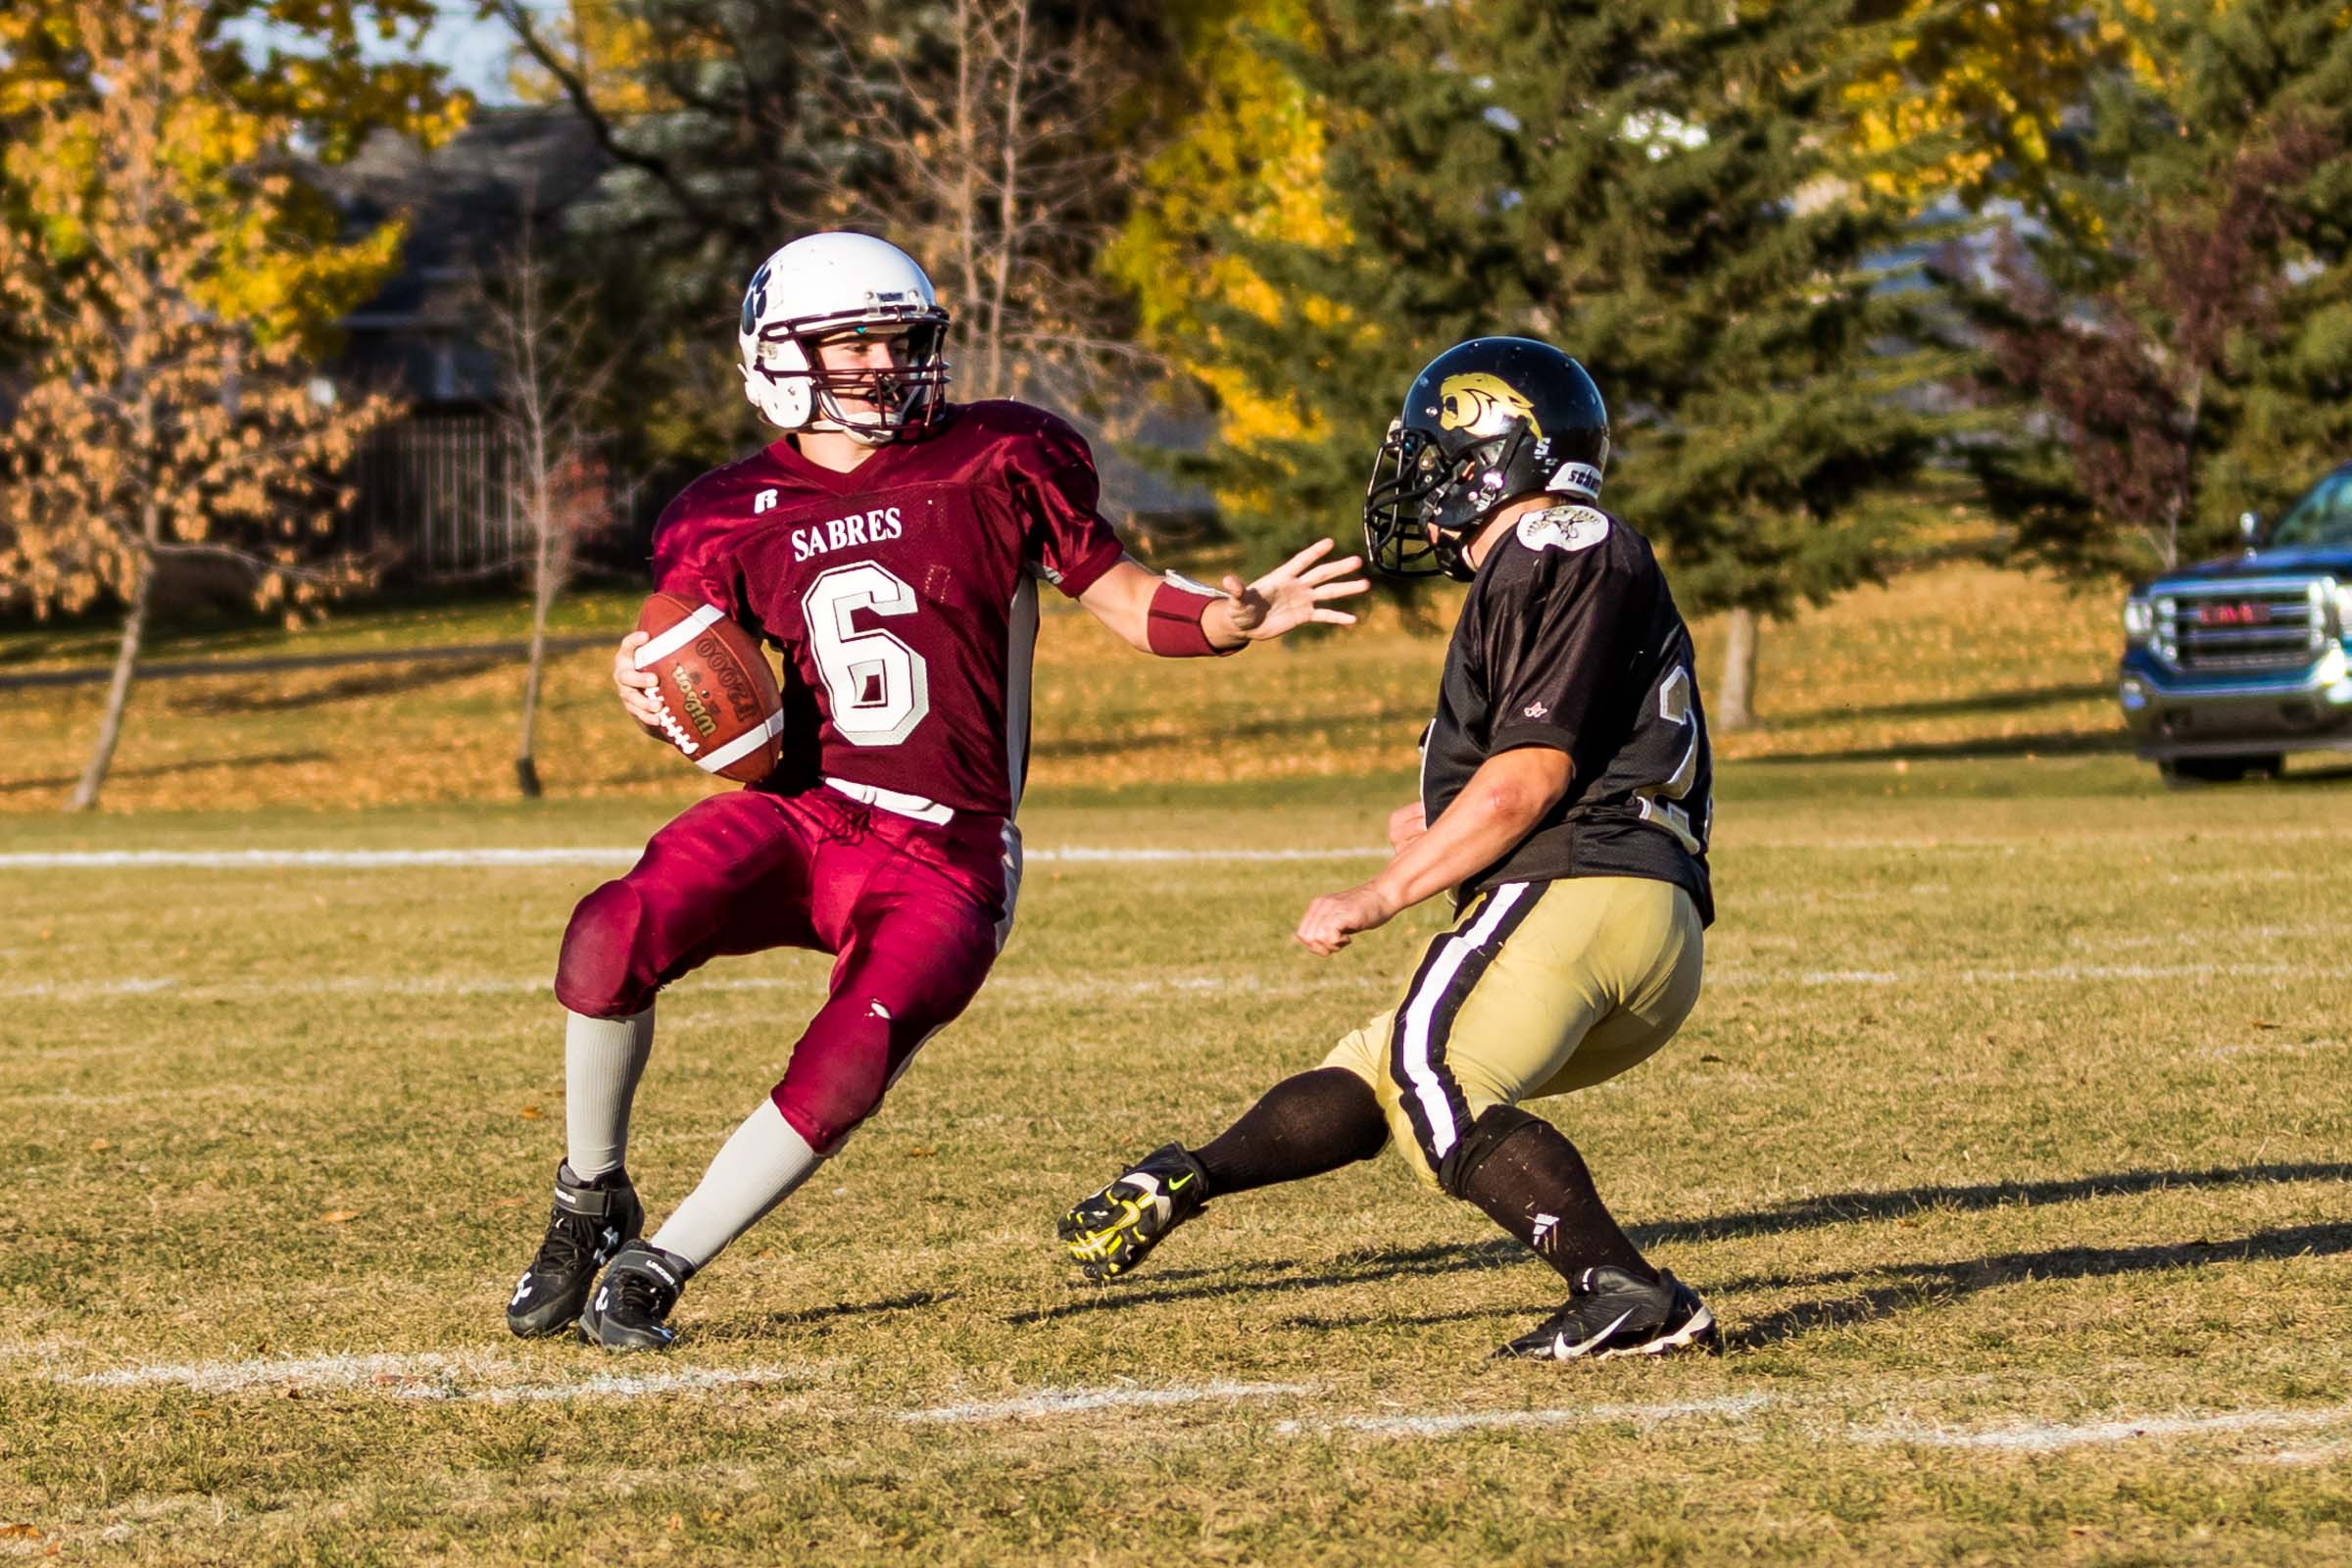 0248_macklinsabres_haguepanthers_football_September 30, 2016.jpg